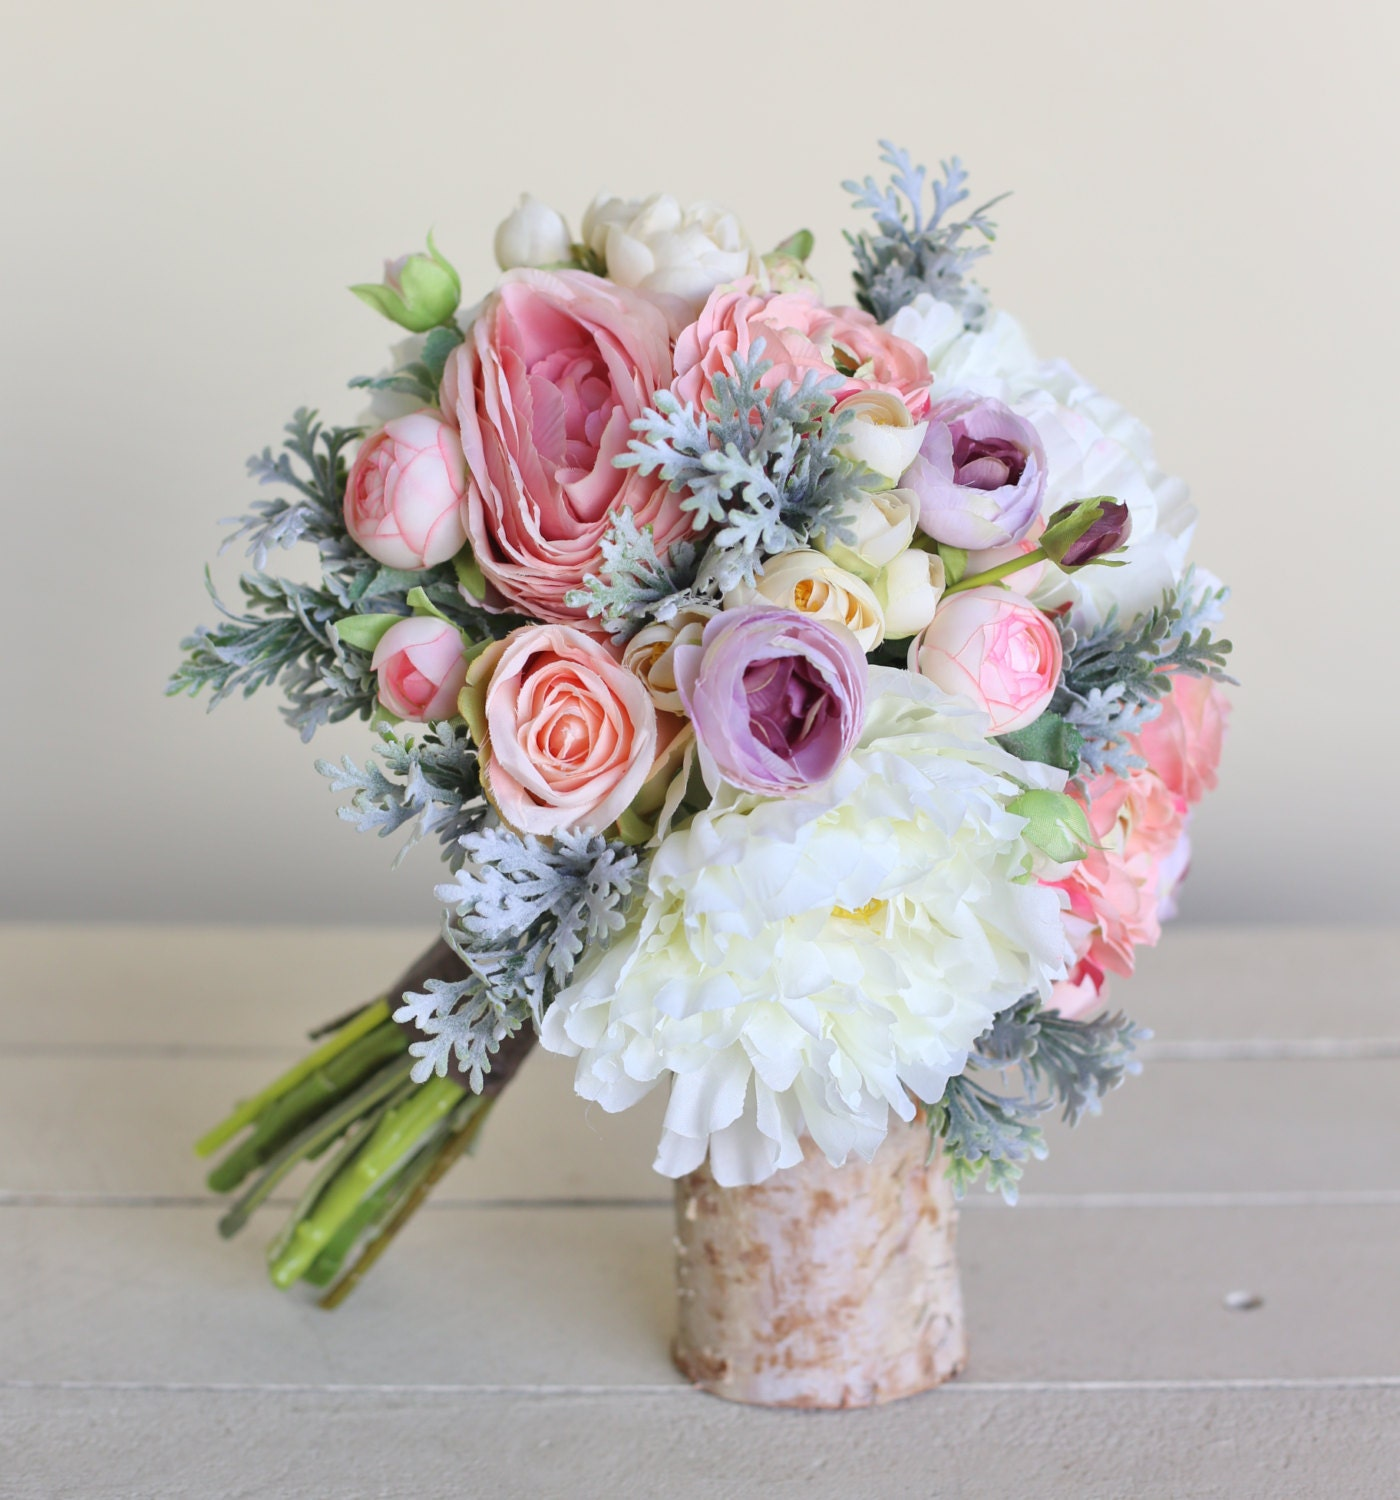 Bridal Bouquets Silk Flowers: Rustic Silk Bridal Bouquet By Braggingbags On Etsy